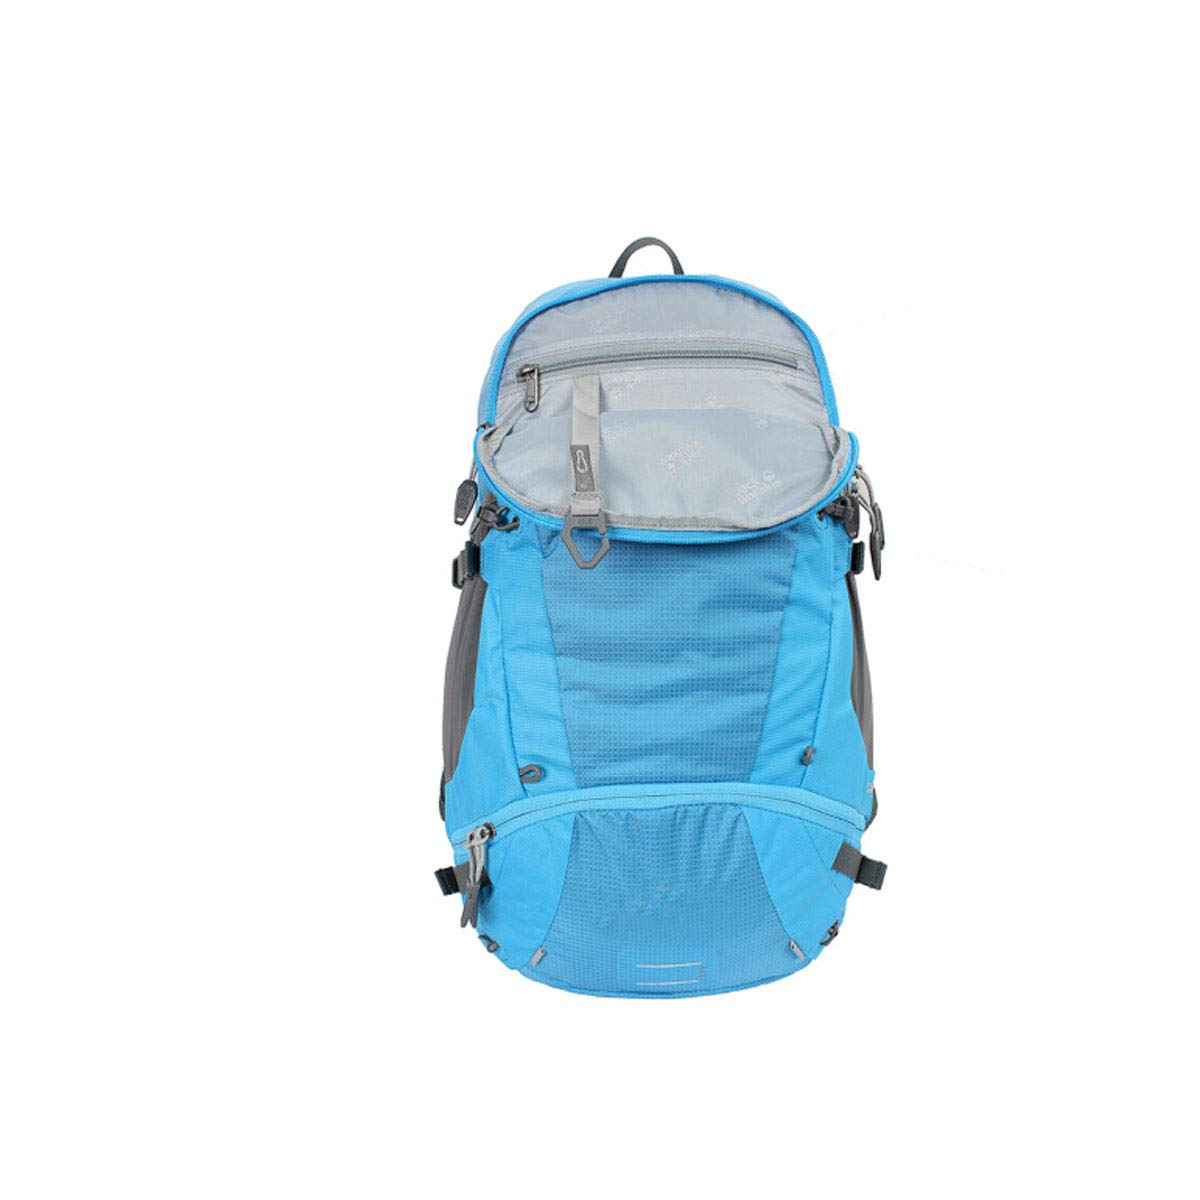 Chenjinxiang Casual Ultra Lightweight Comfortable Travel Backpack, Blue (Color : Blue) by Chenjinxiang (Image #4)